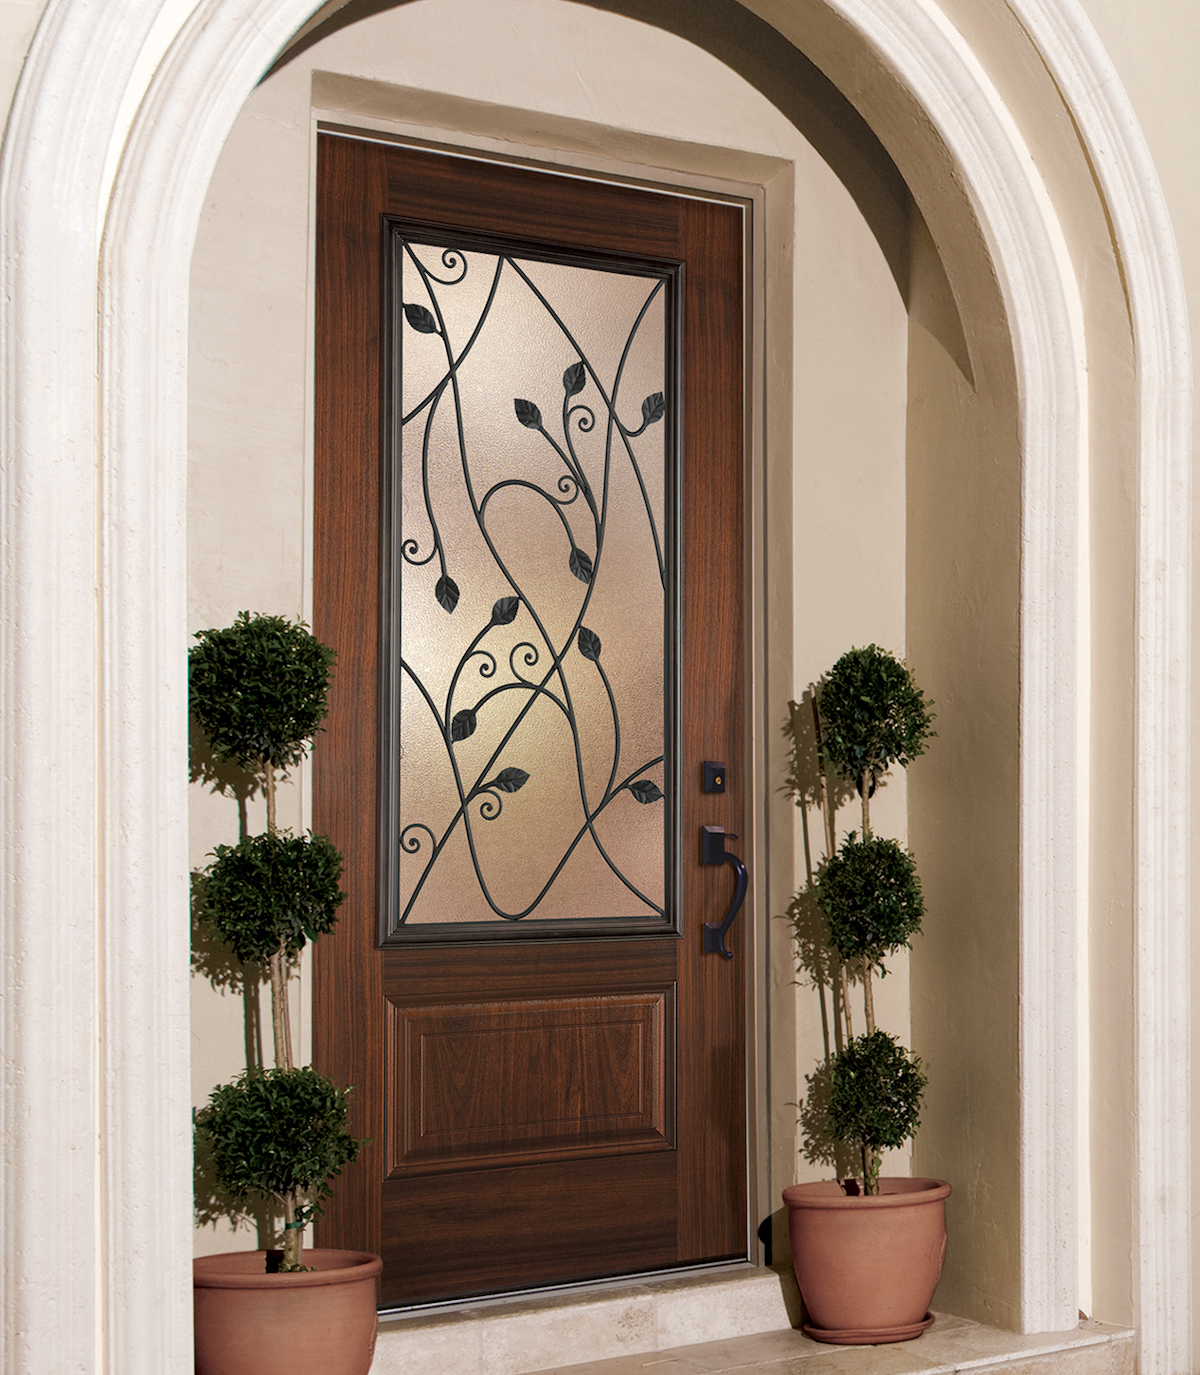 Masonite provides a comprehensive selection of distinctive interior and exterior door styles to complement any home or taste